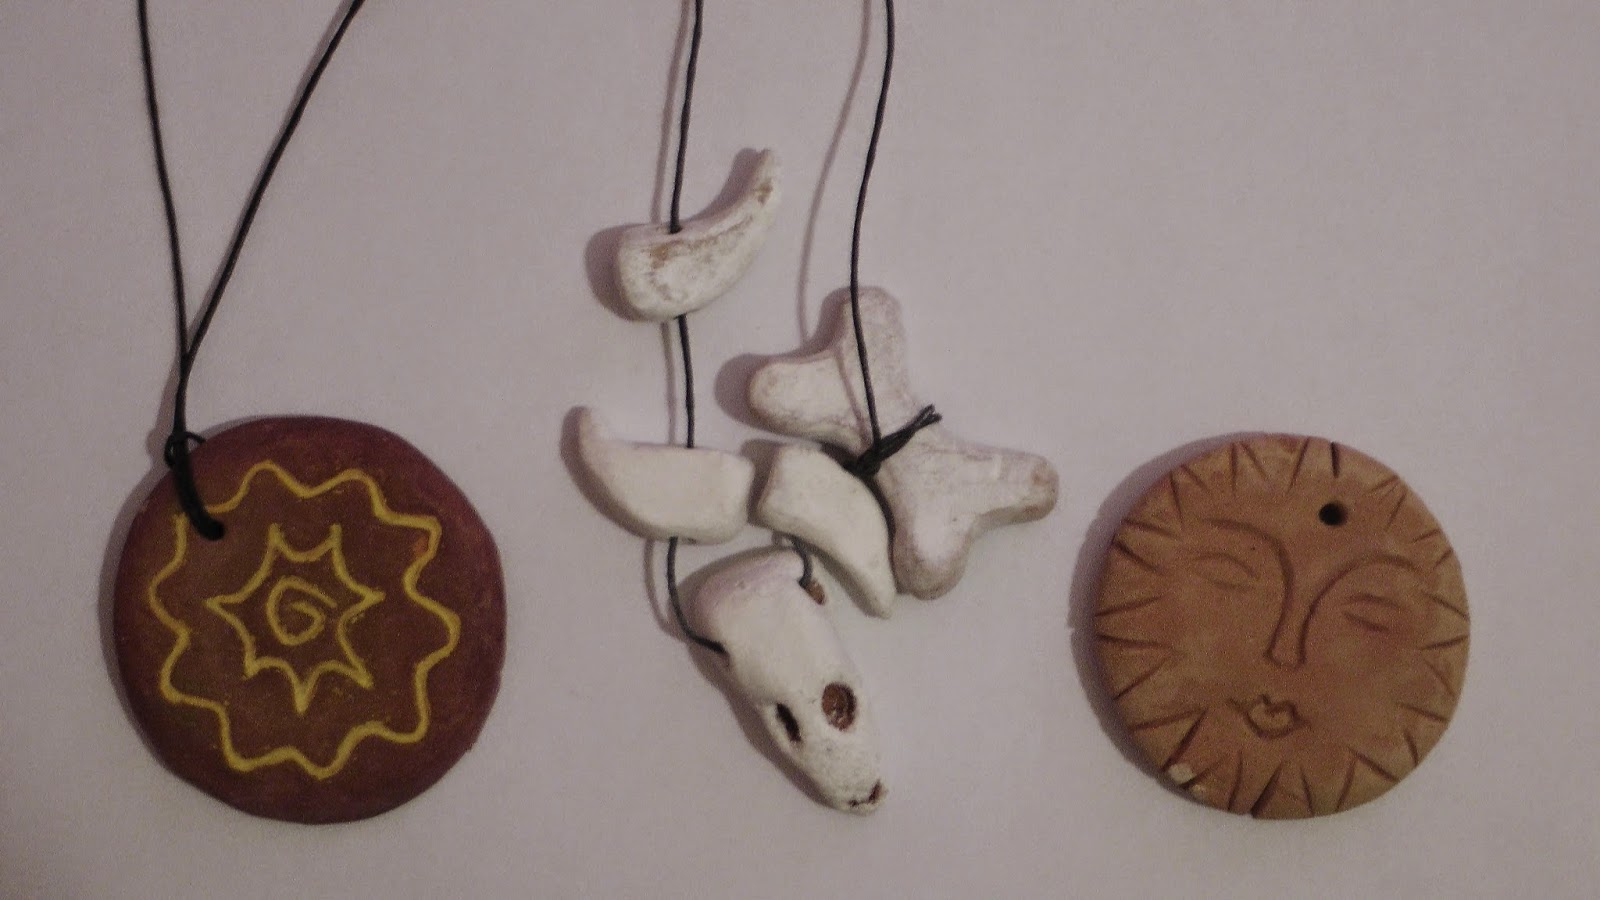 Jewellery made of clay